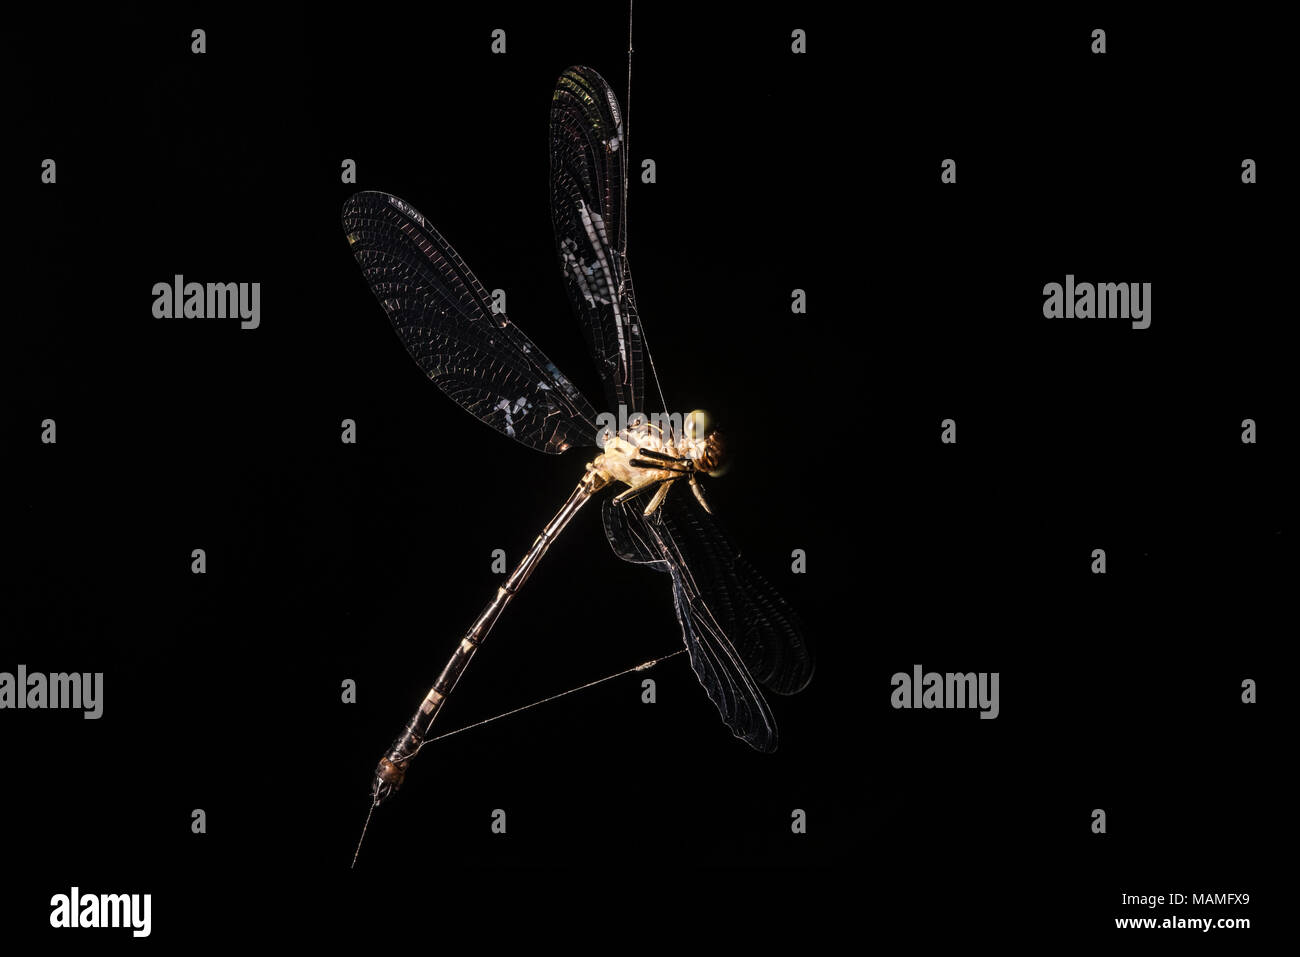 A dragonfly that is hopelessly caught in a spiders web. - Stock Image